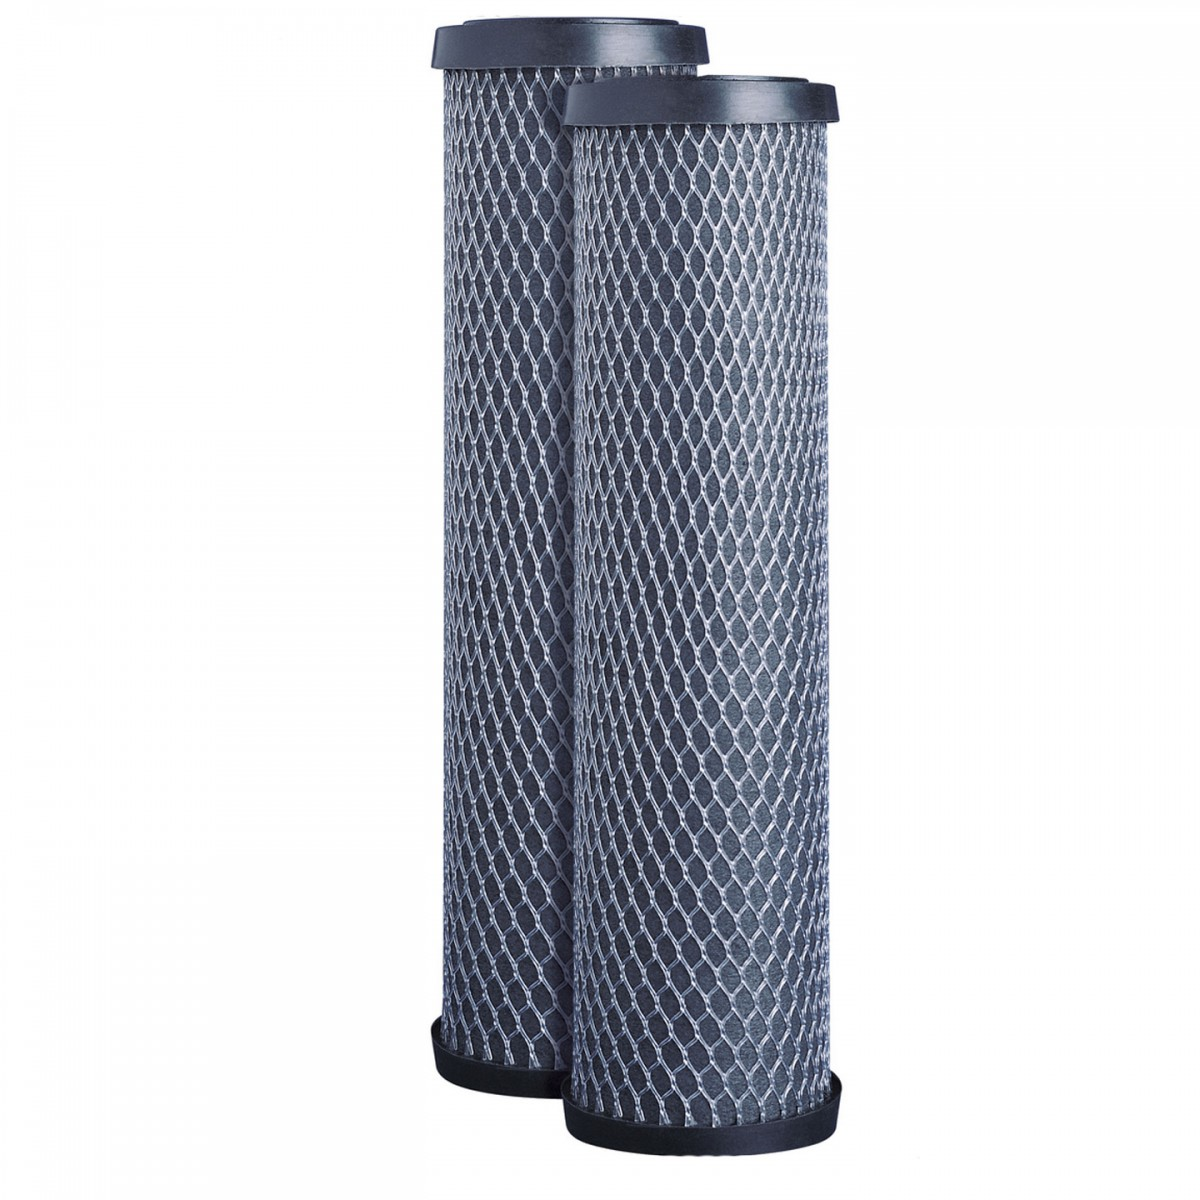 Fxwtc Ge Smartwater Whole House Filter Replacement Cartridge